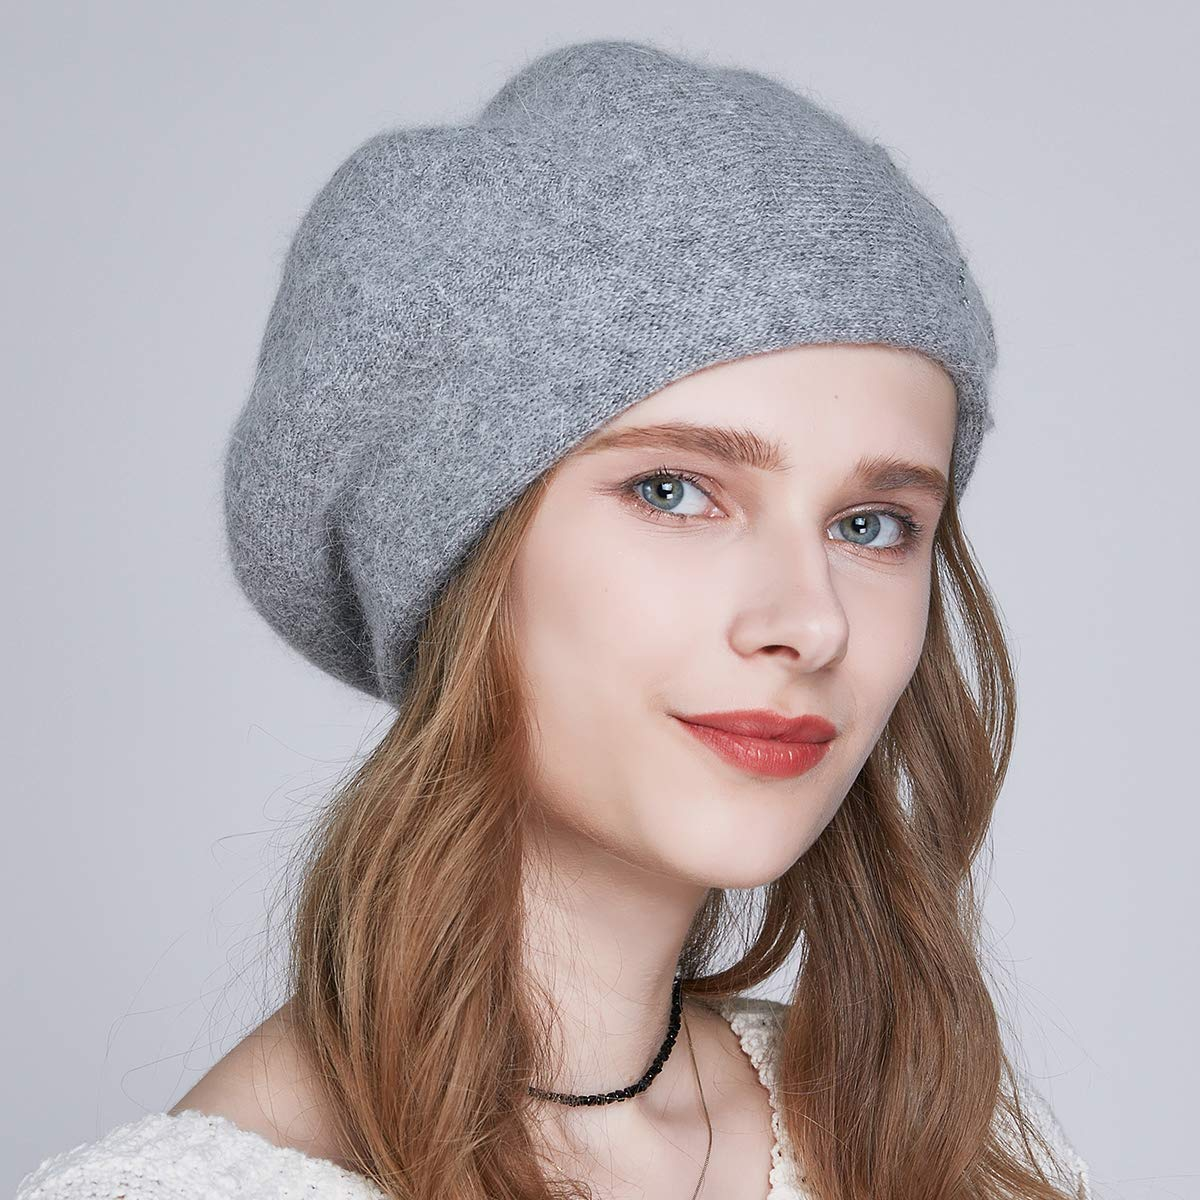 SOMALER Winter Beret Hats for Women French Angora Wool Beret Knit Beanie Lightweight Cap by SOMALER (Image #6)